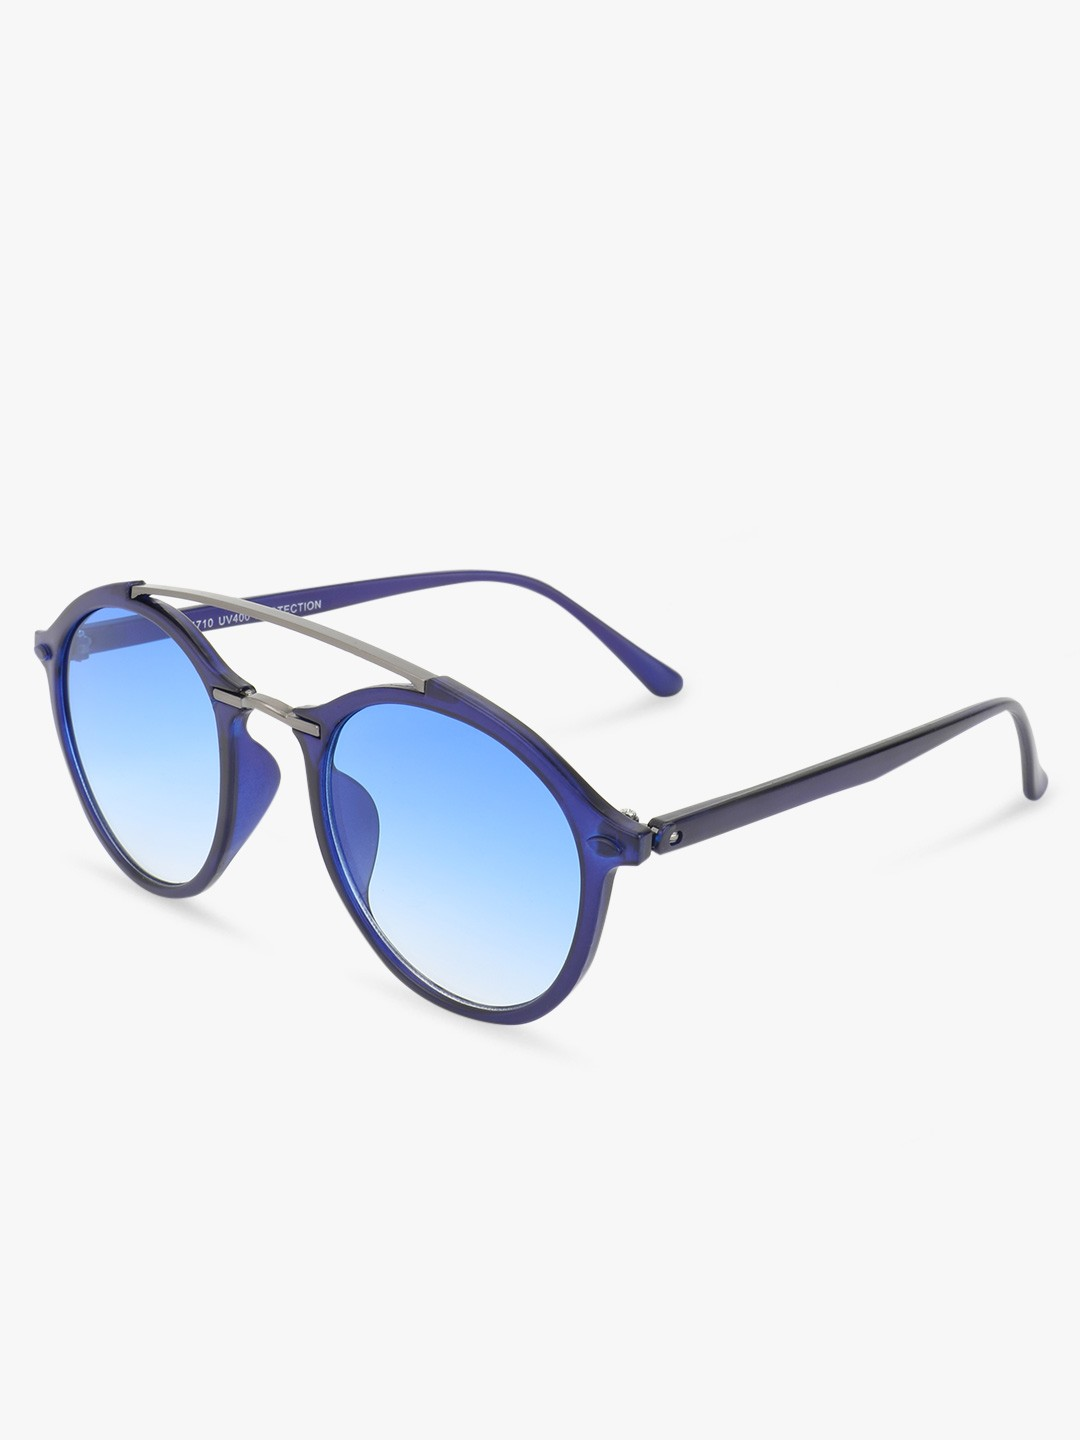 Kindred Blue Coloured Lens Round Sunglasses 1